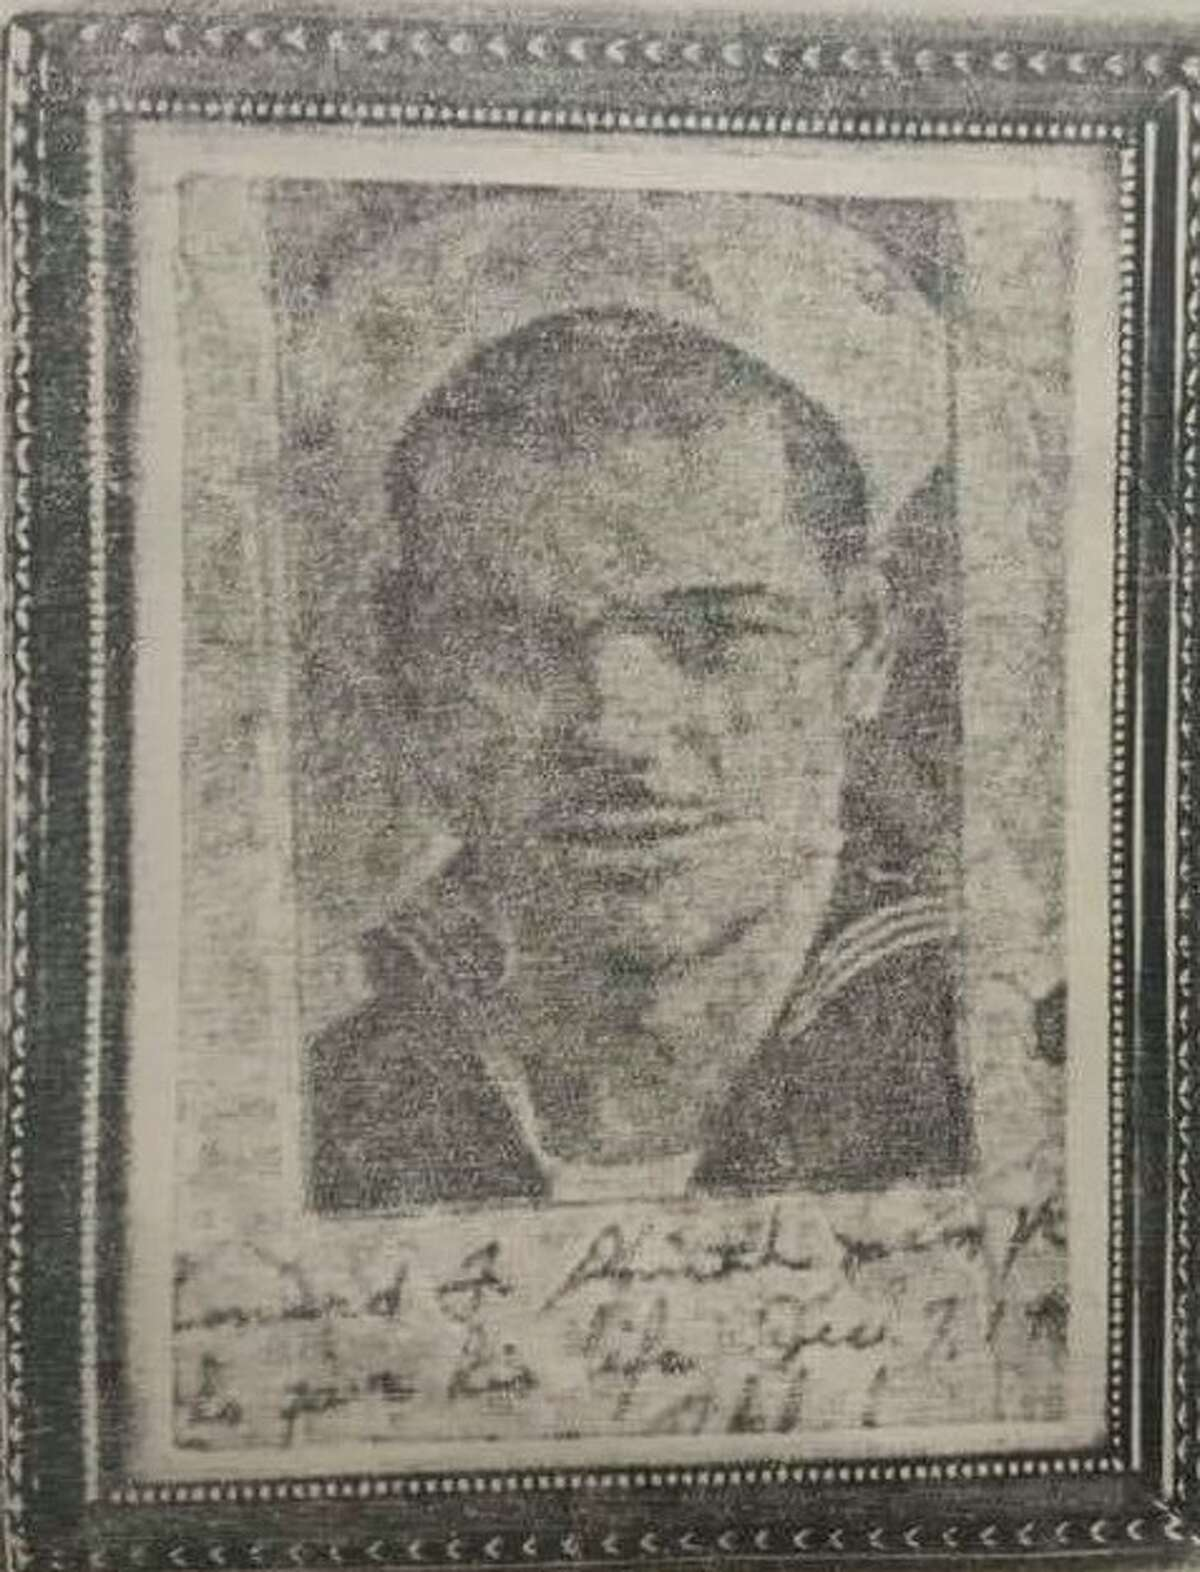 Petty officer Leonard Smith died on the USS Oklahoma during the attack on Pearl Harbor.